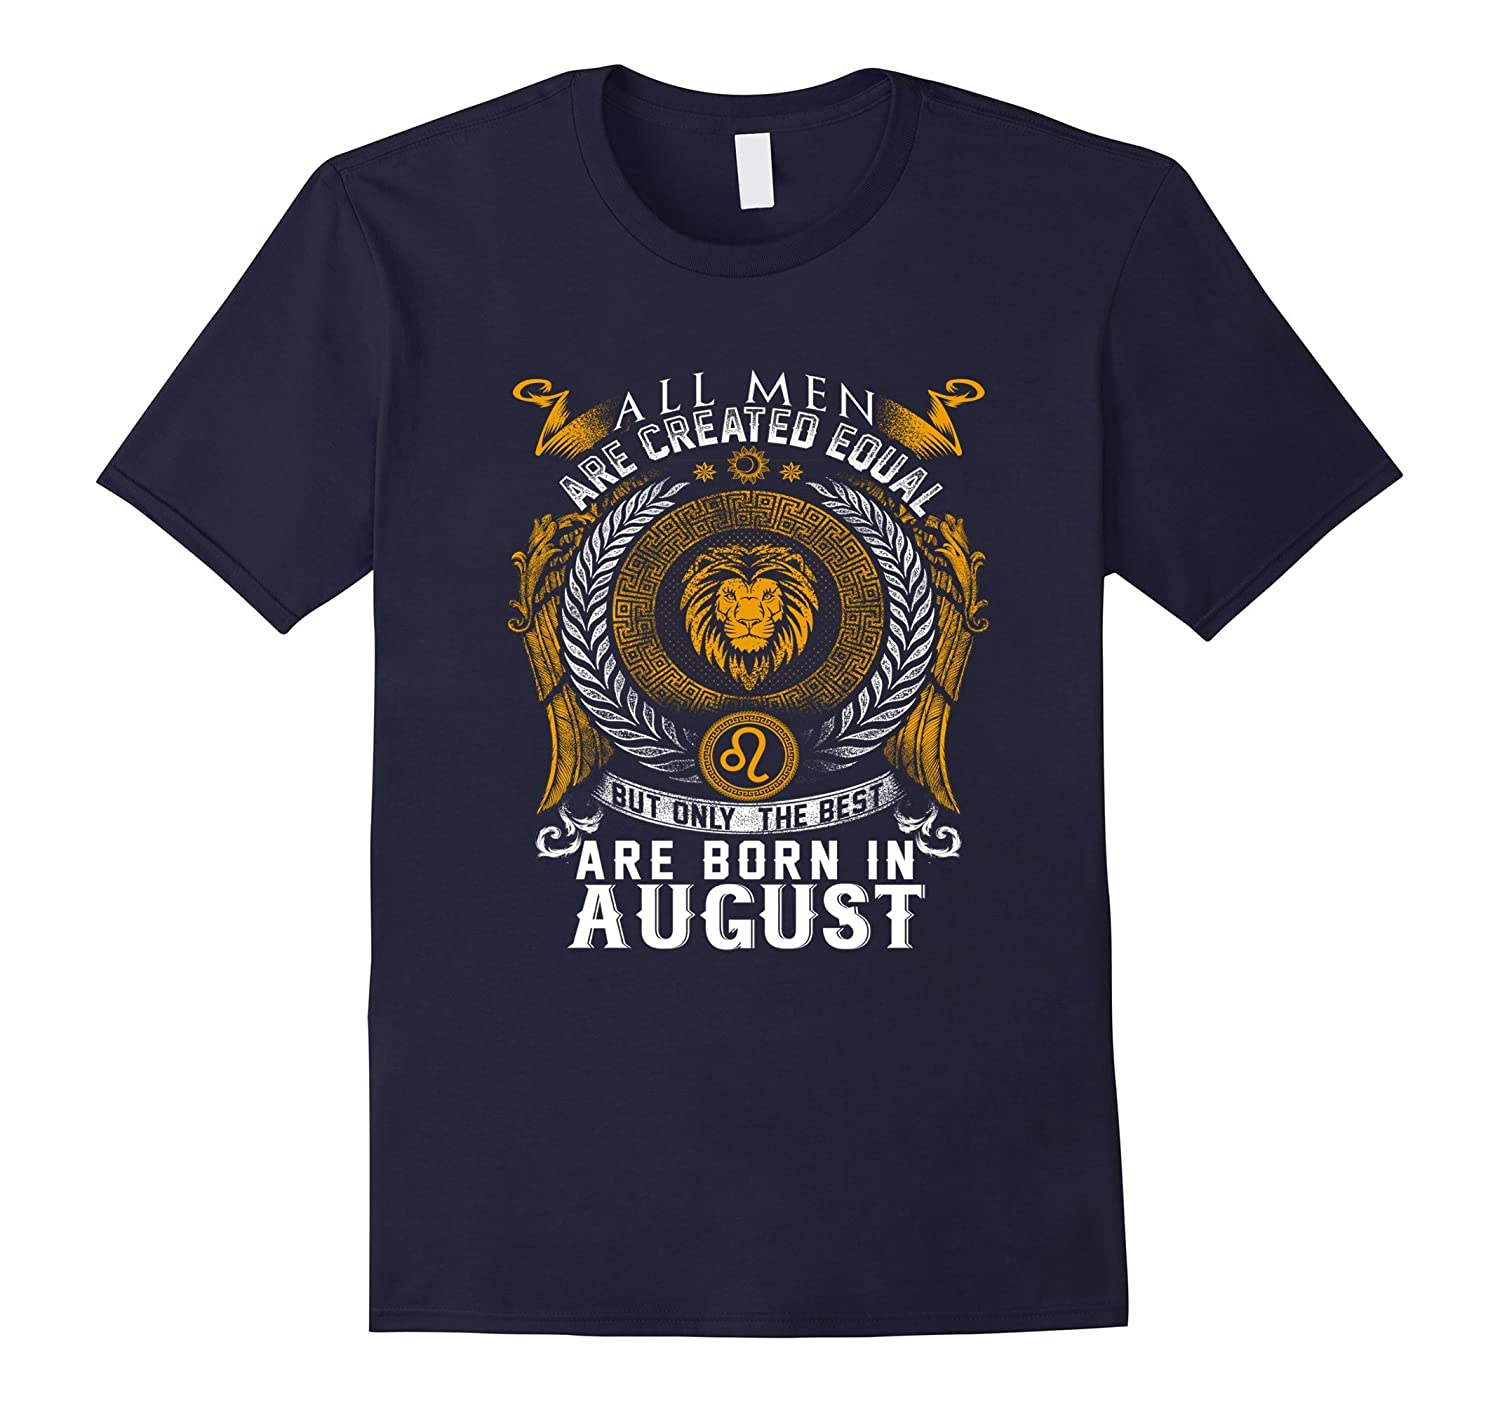 All men are created equal but the best are born in August-BN